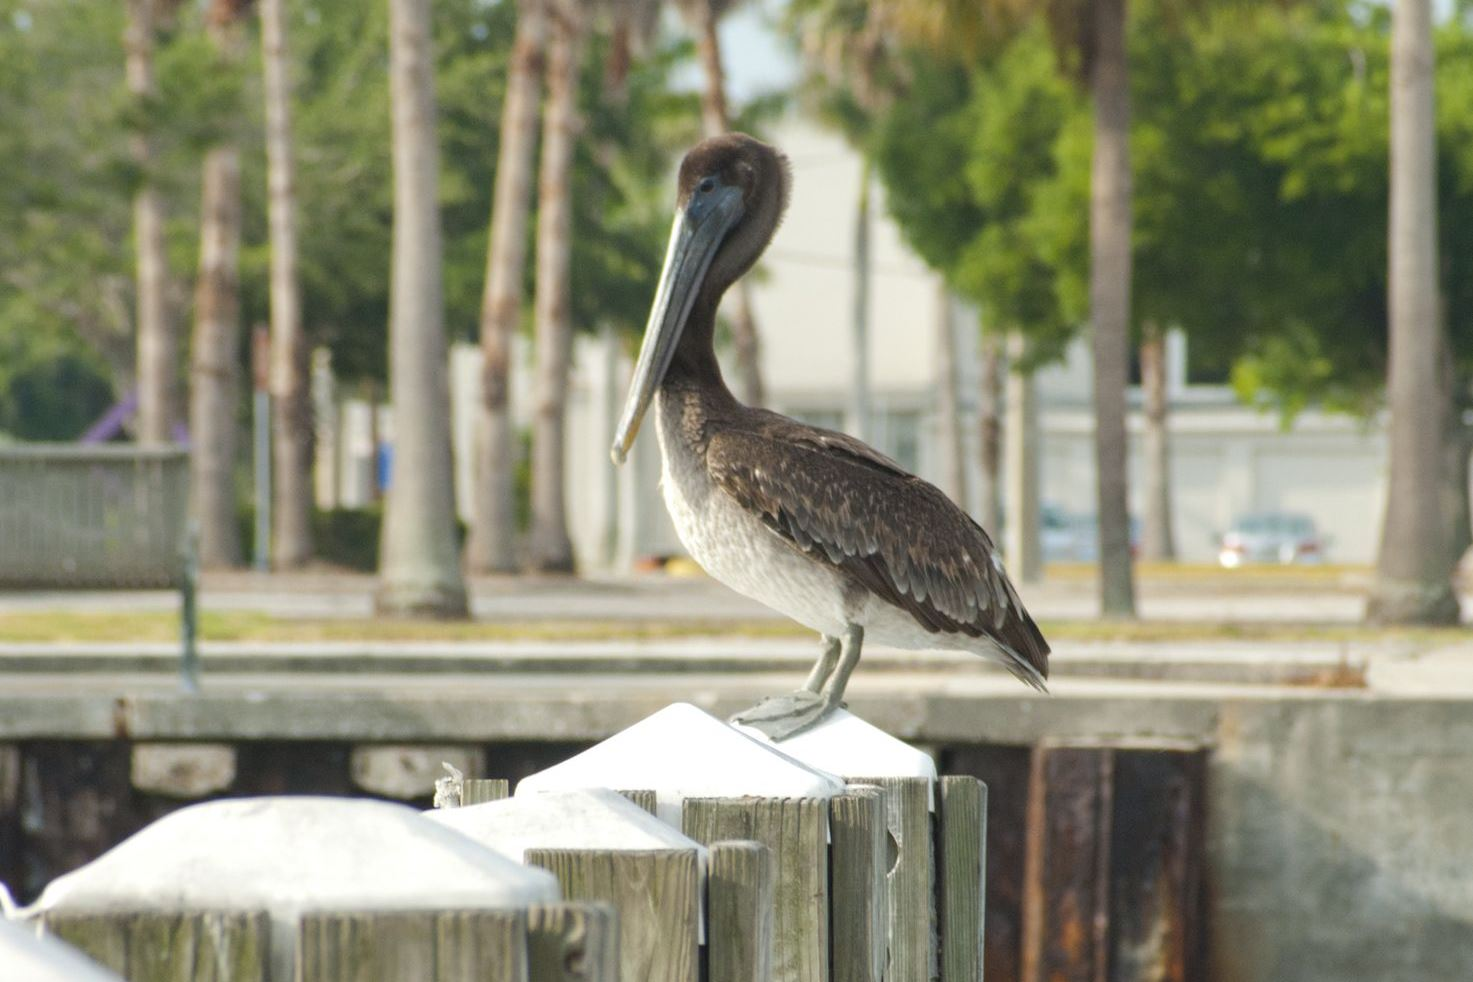 Brown Pelican at Sarasota's bayfront docks